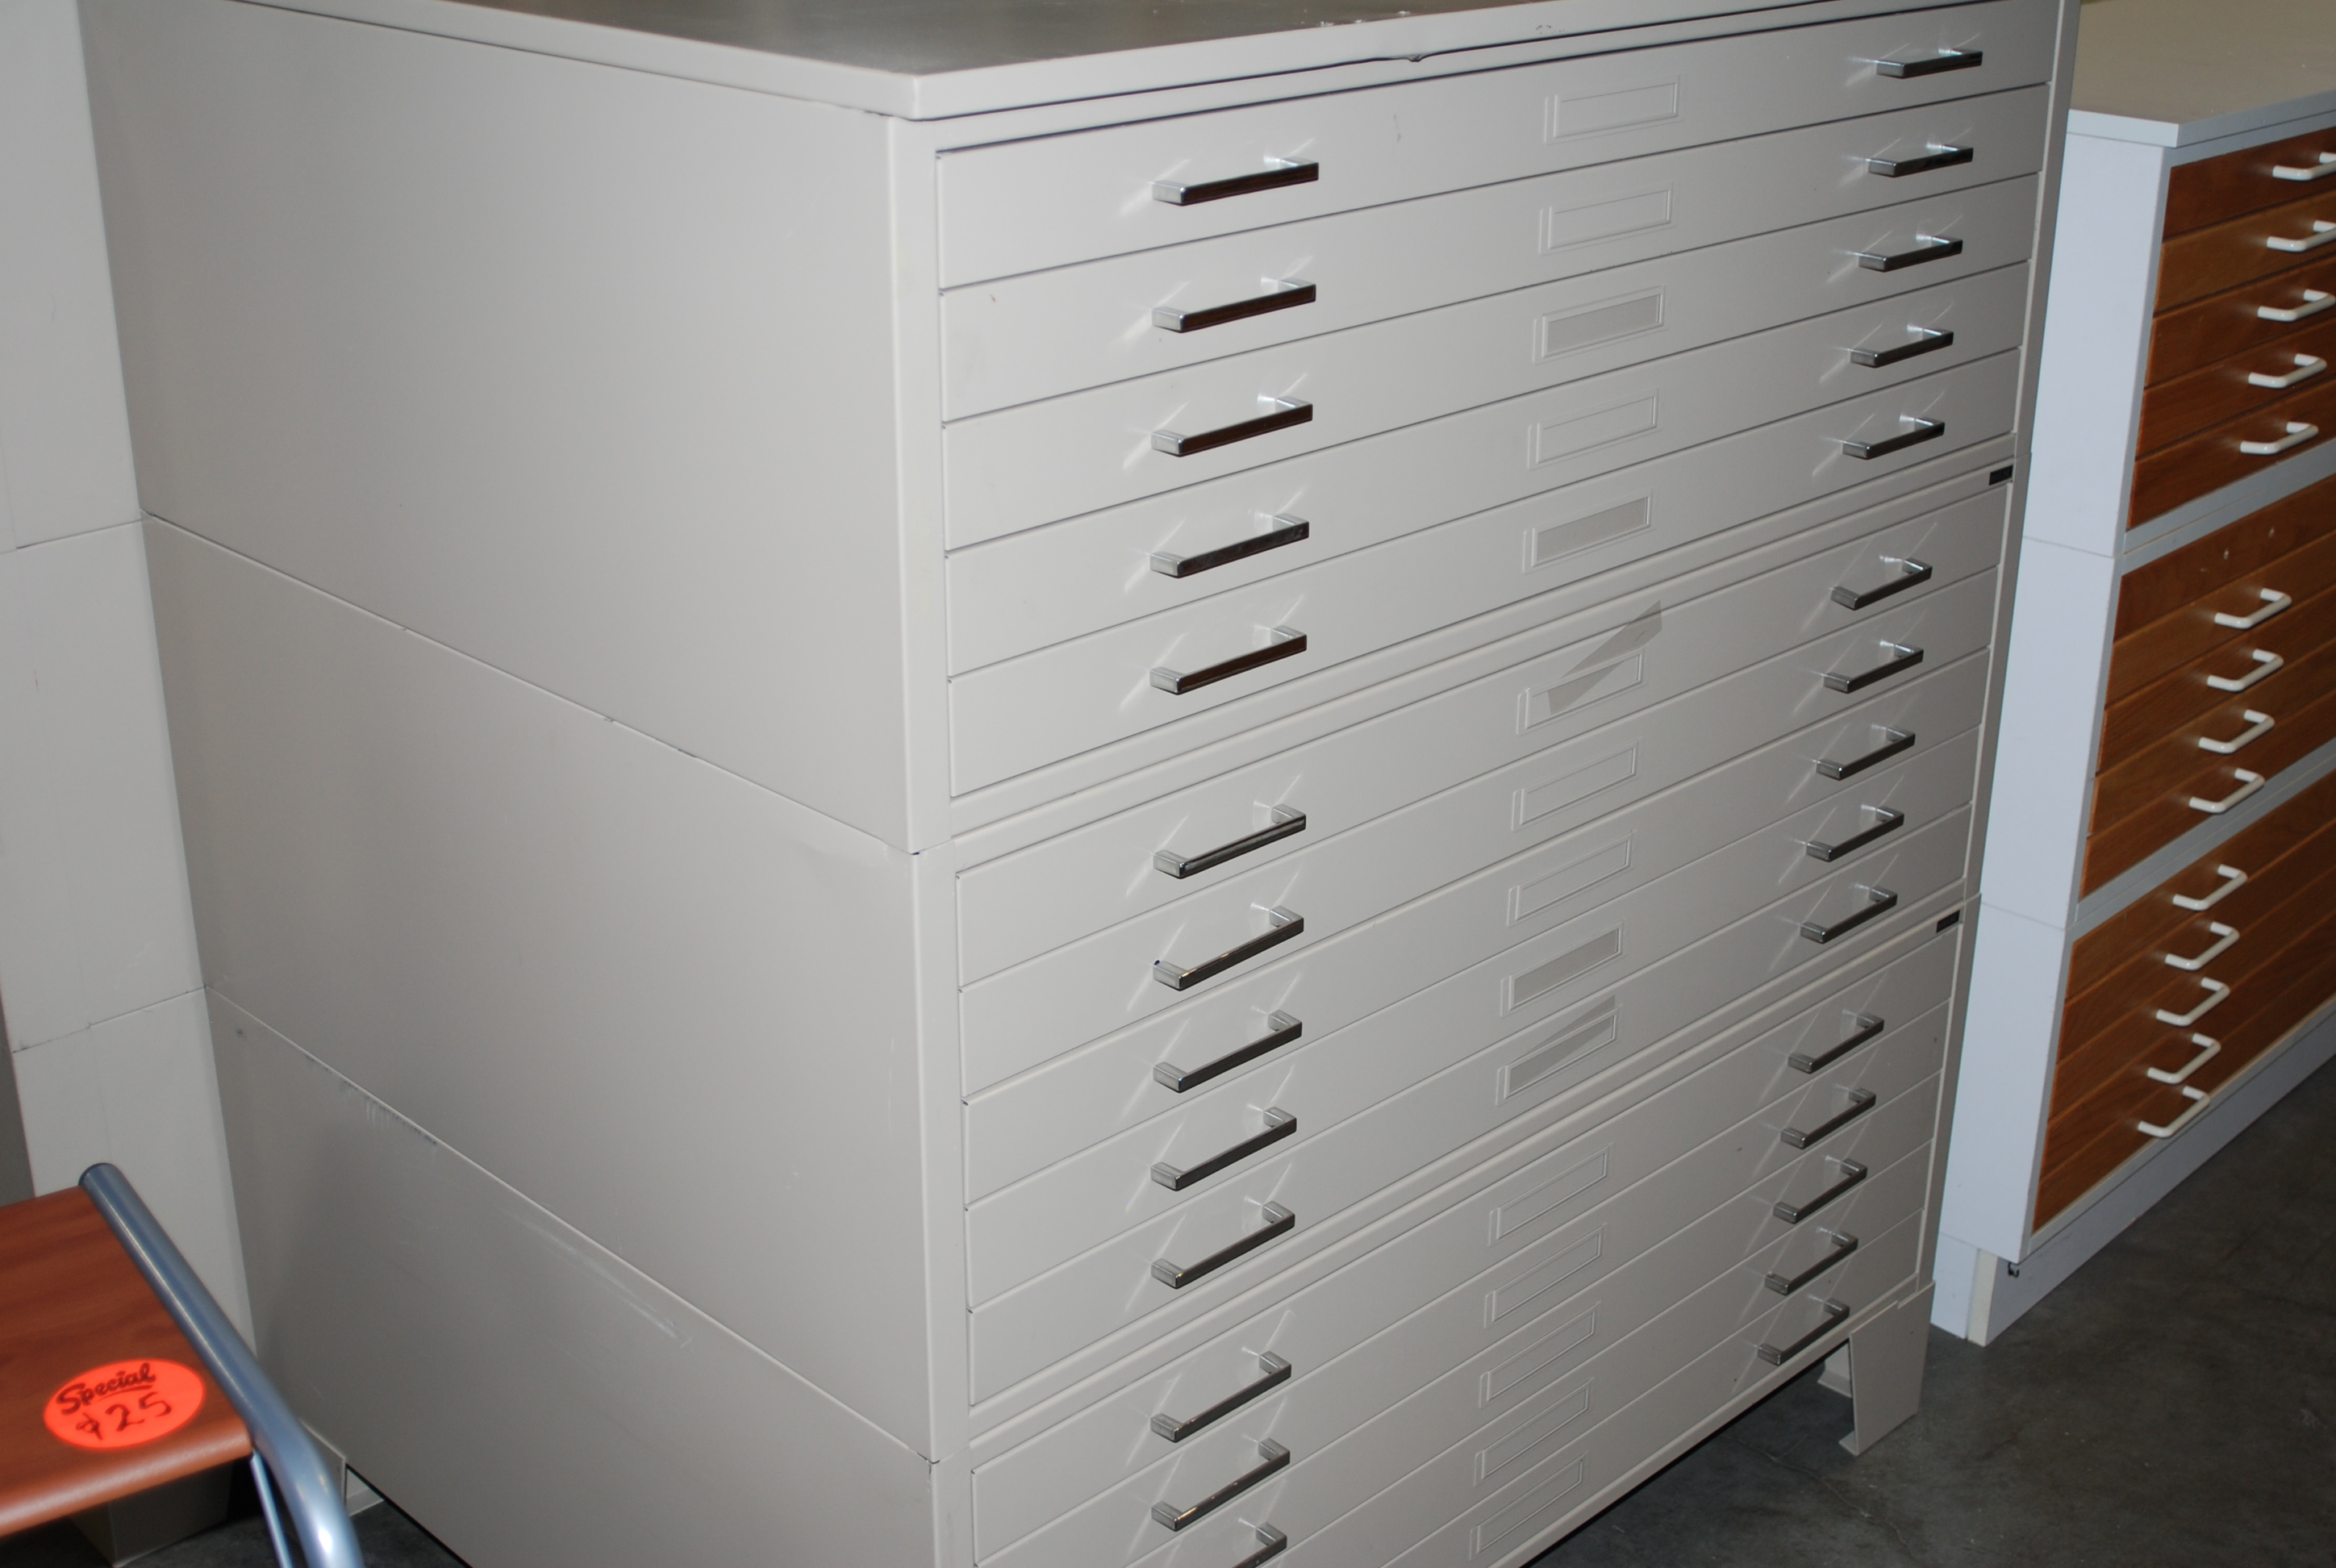 Used flat files roll files plan racks hoppers drafting furniture used set of flat malvernweather Images